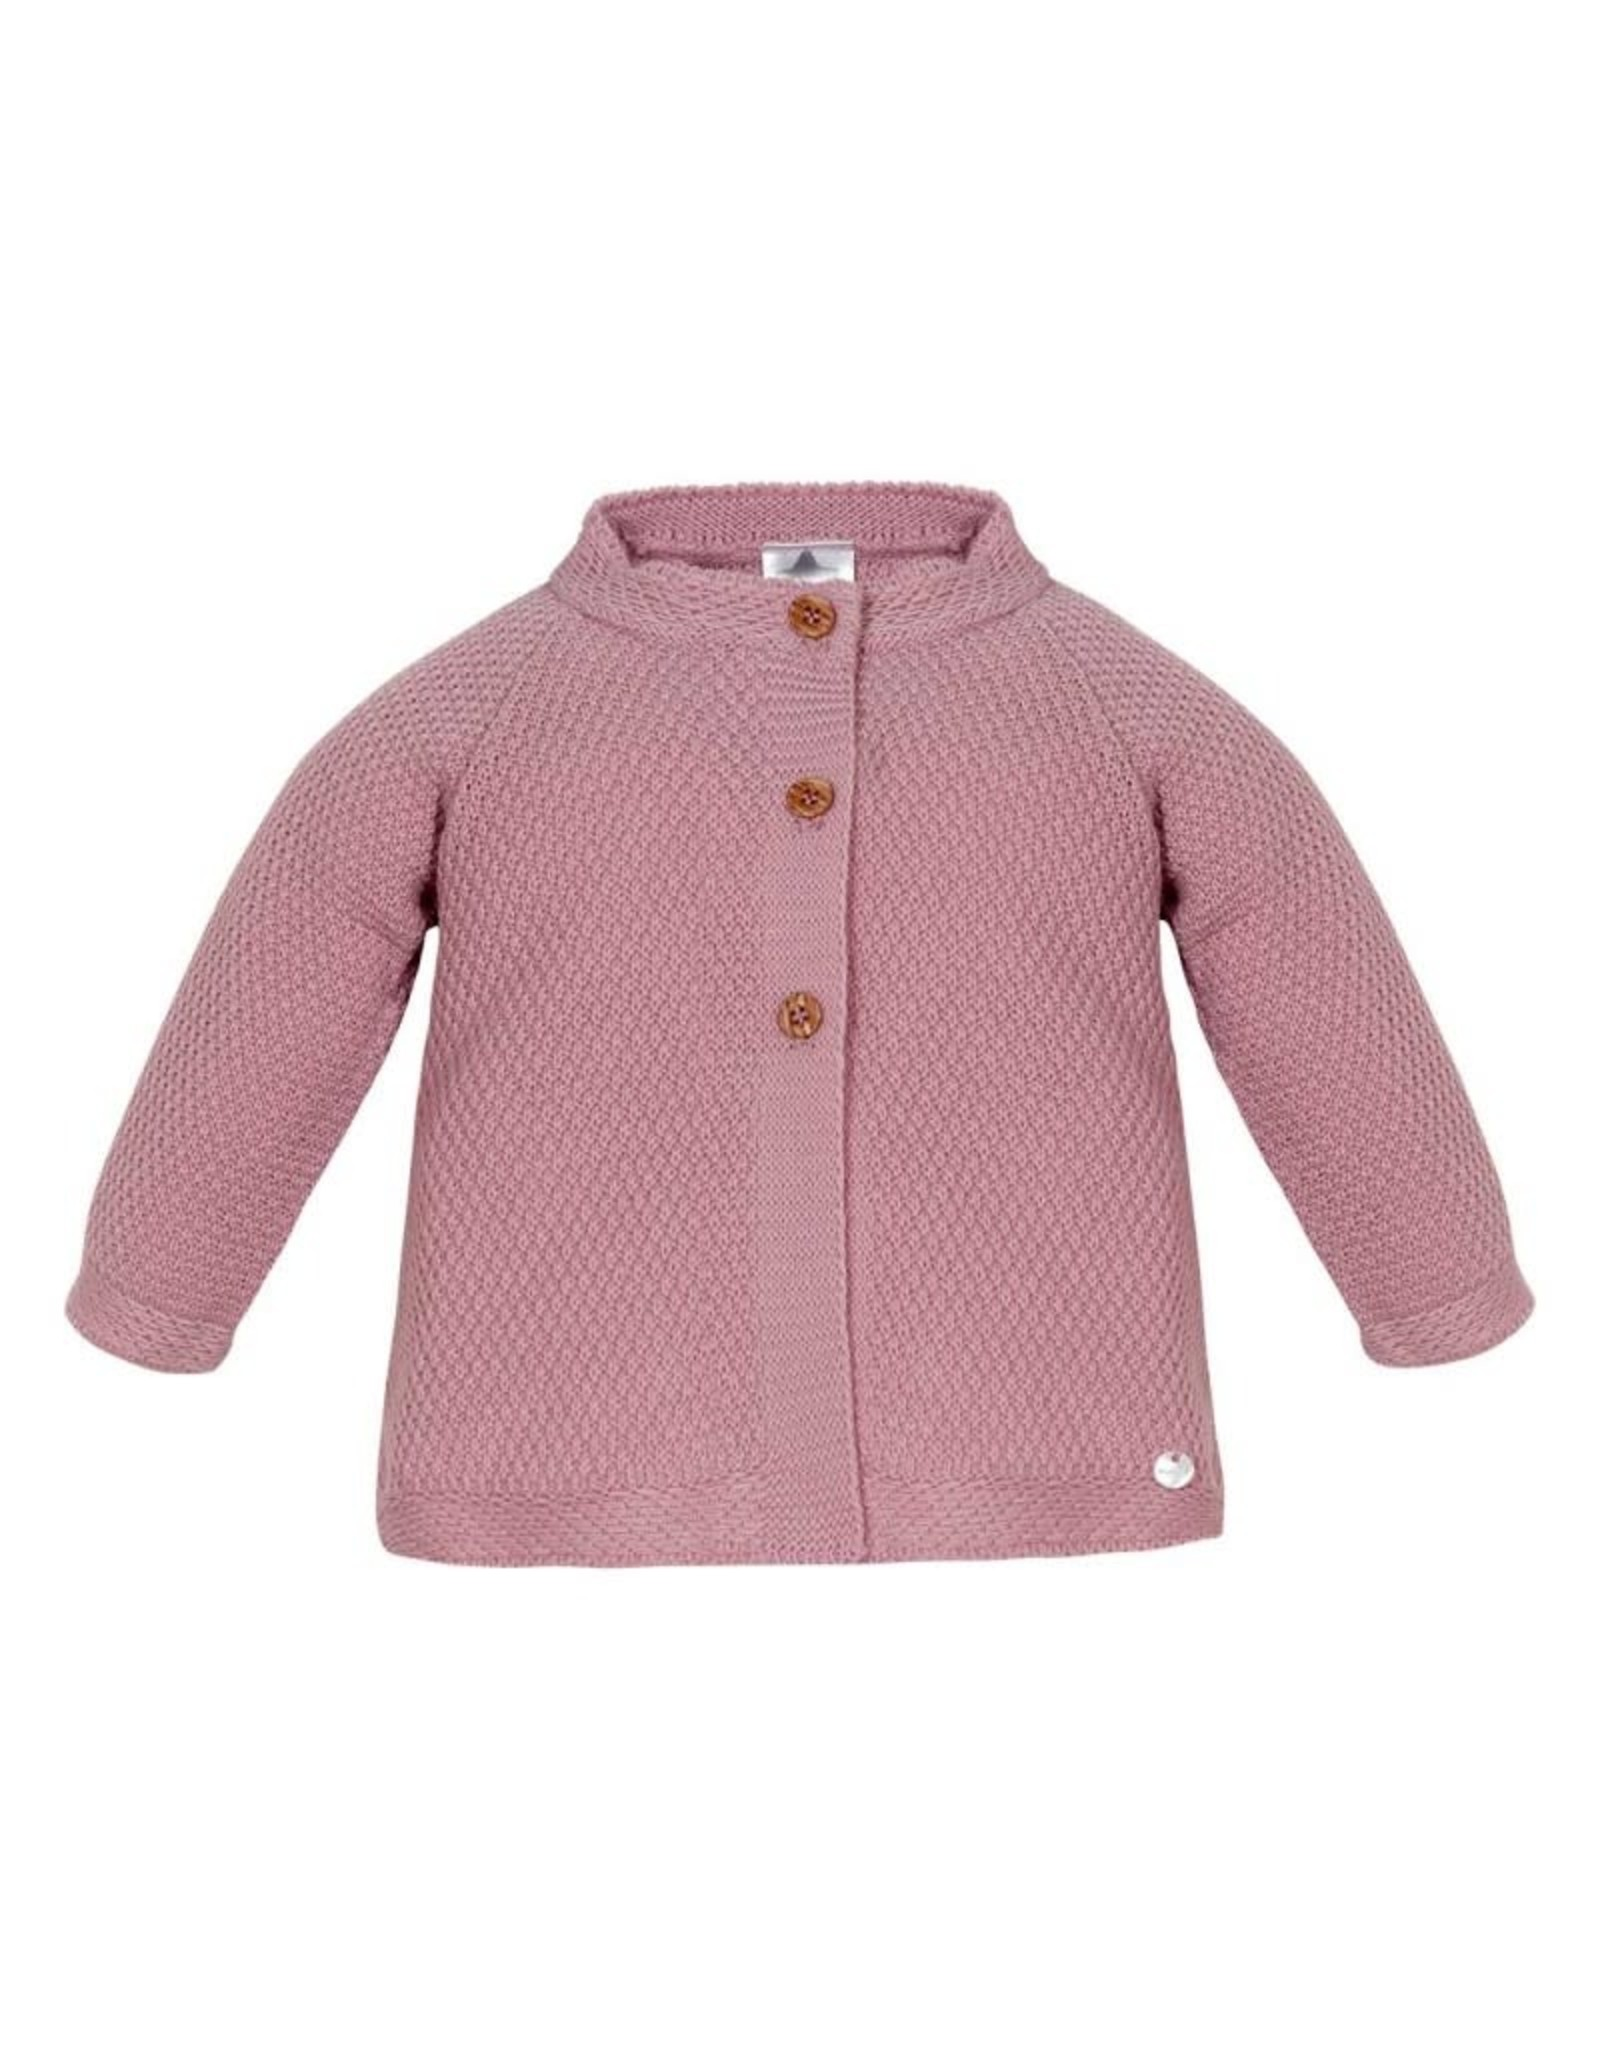 MINHON Old Pink Knitted Long Cardigan